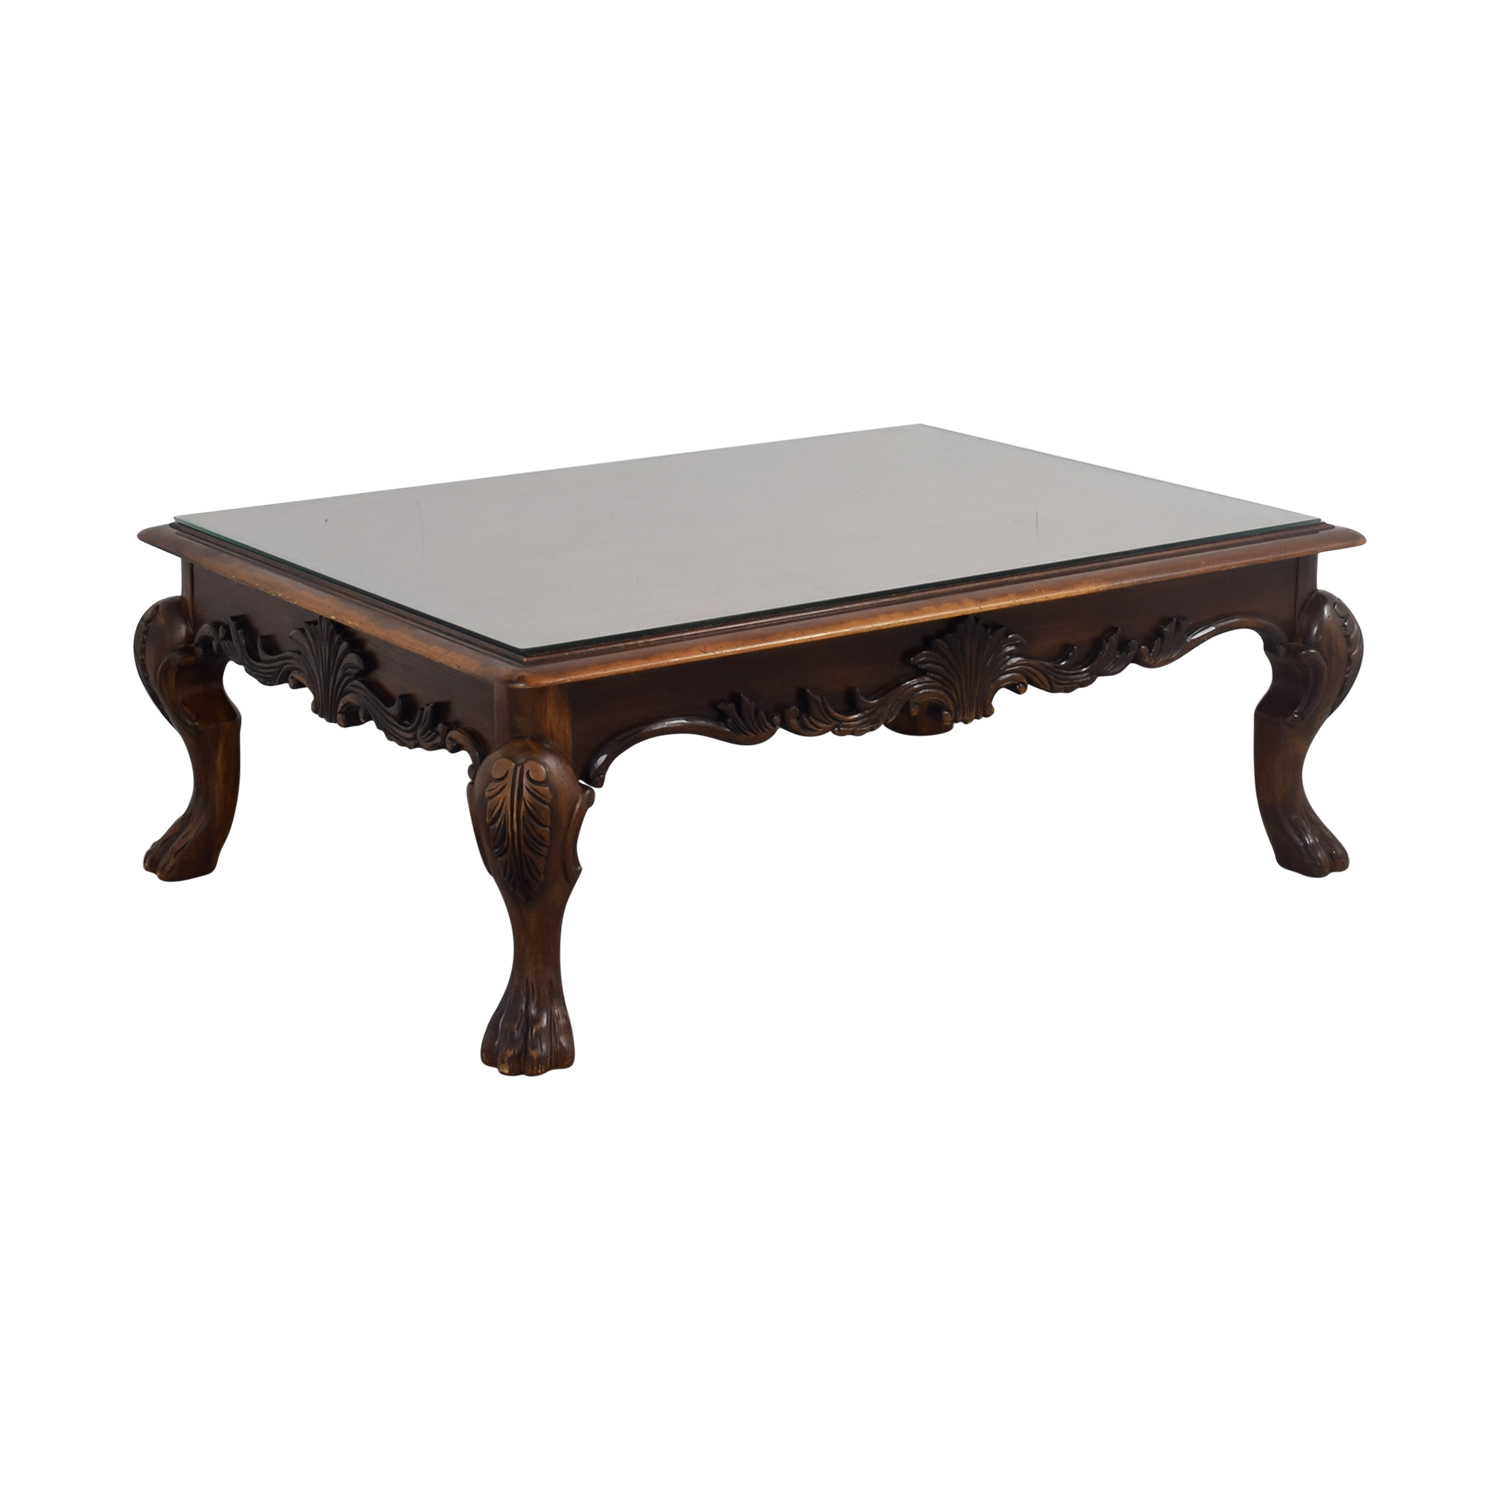 Glass Top Rectangular Coffee Table: Rectangular Carved Wood Coffee Table With Glass